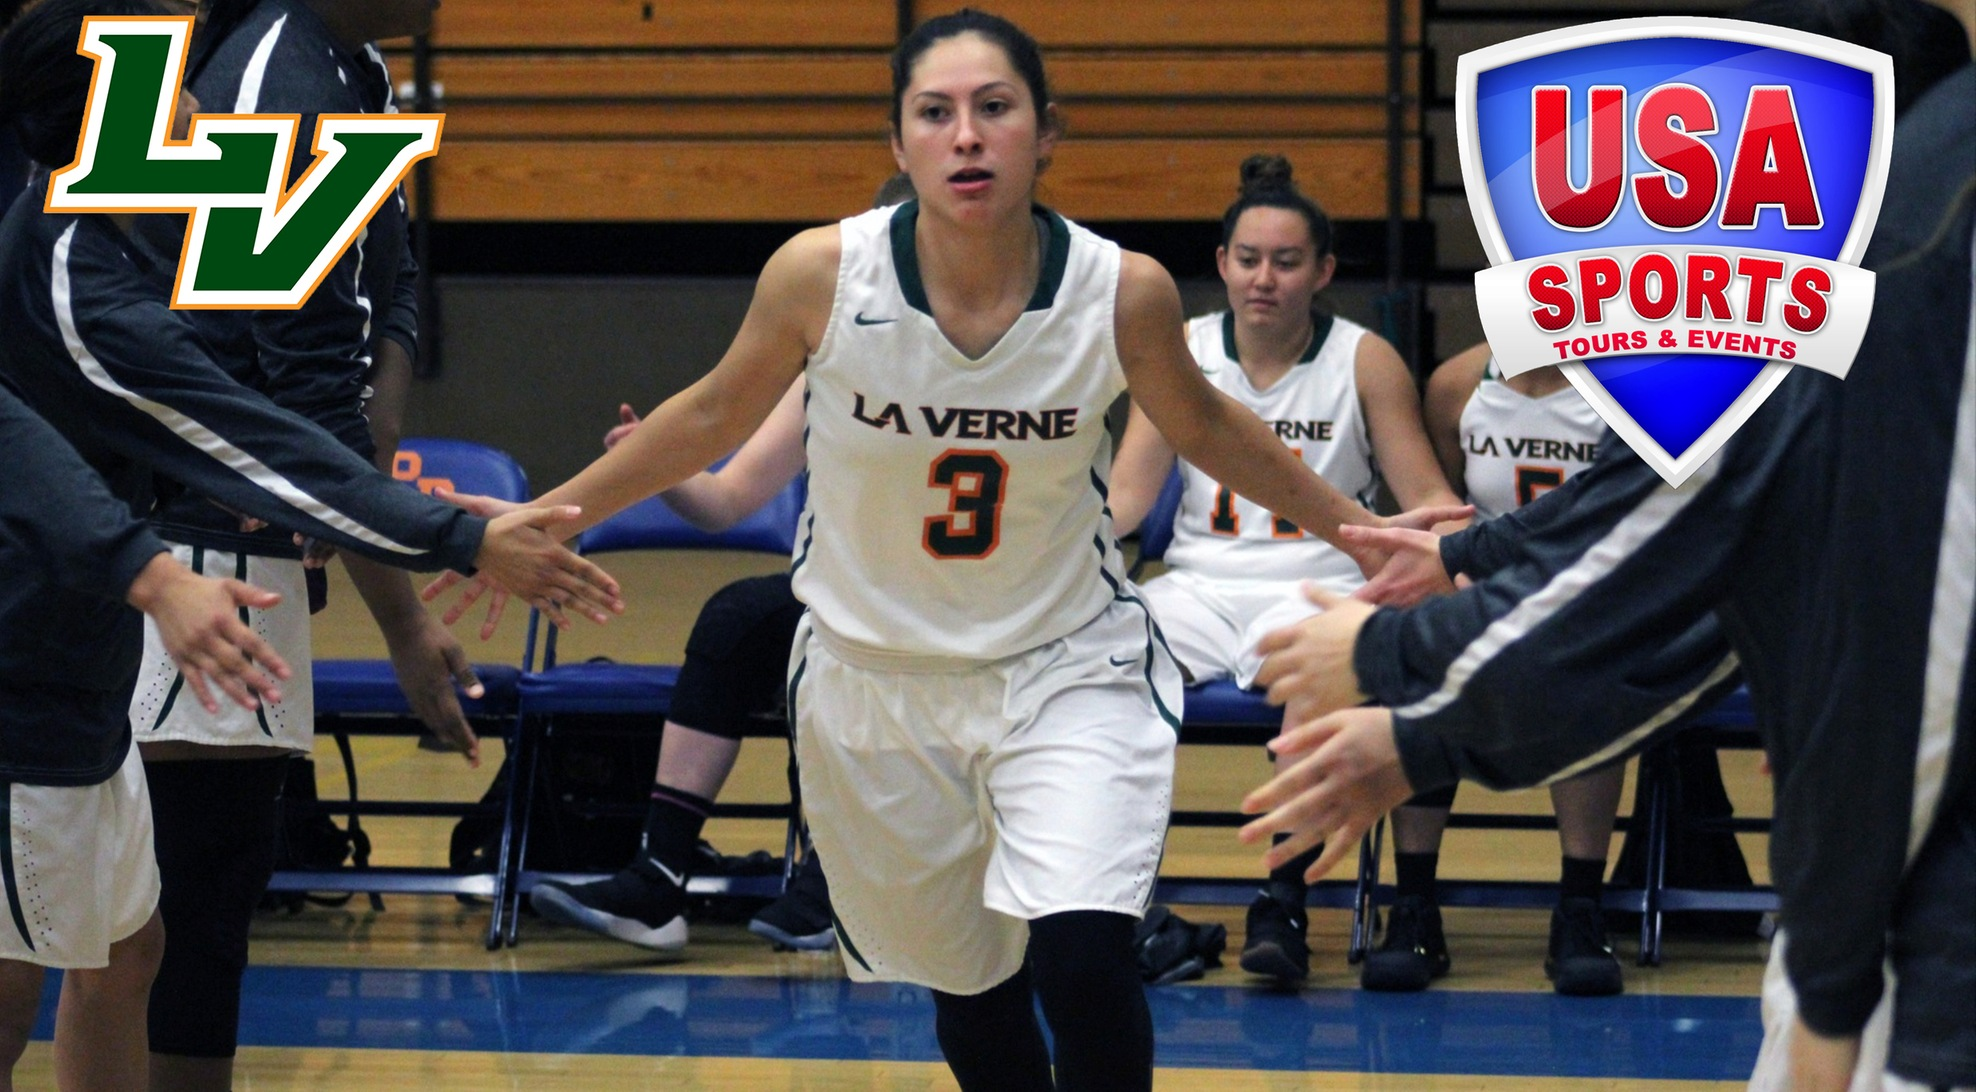 Perez named to USA D3 Women's Basketball Team